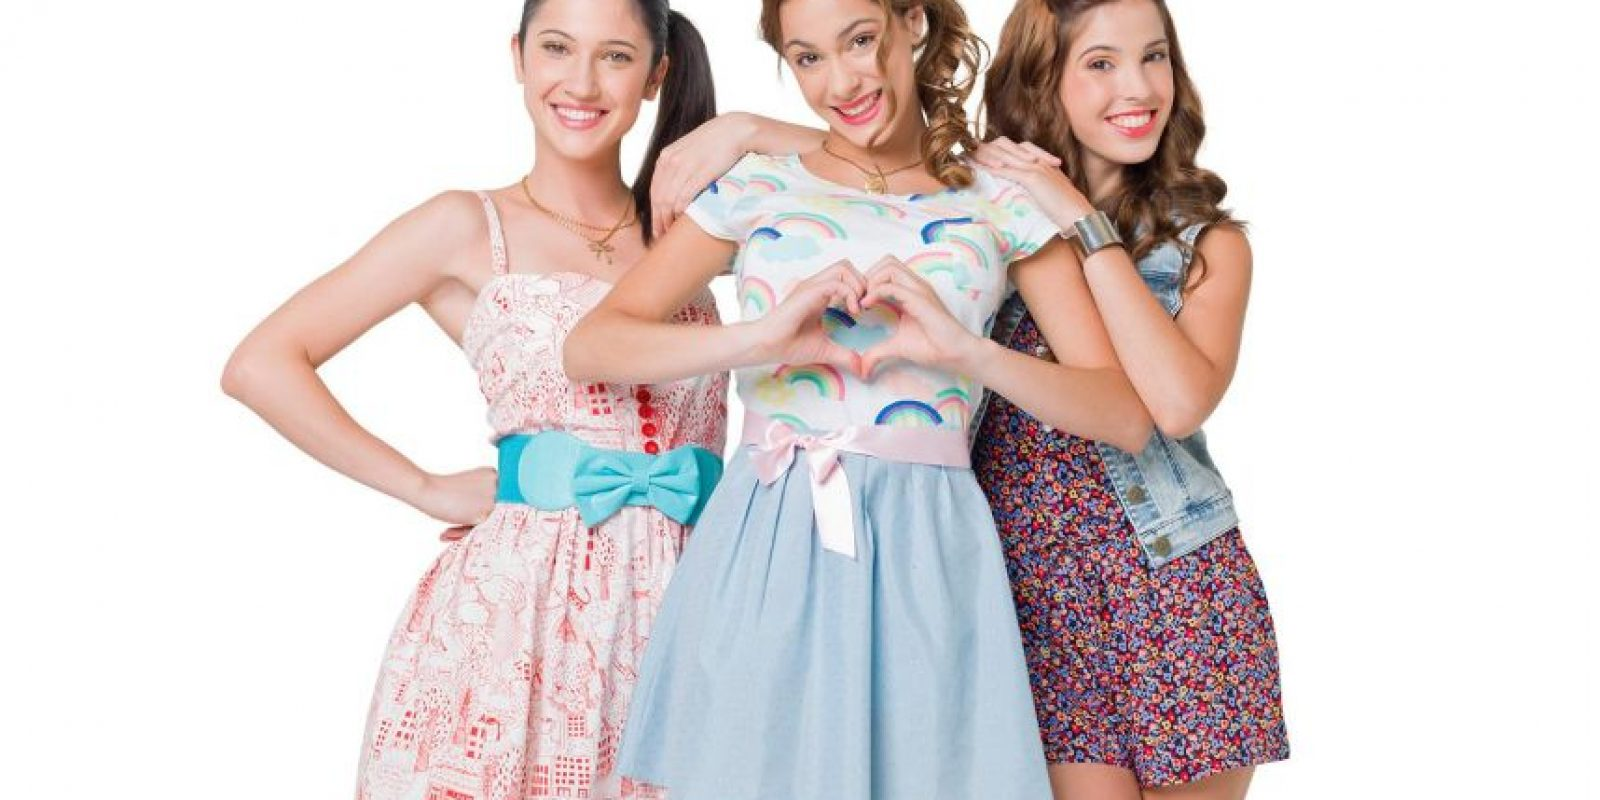 Foto: Disney Channel